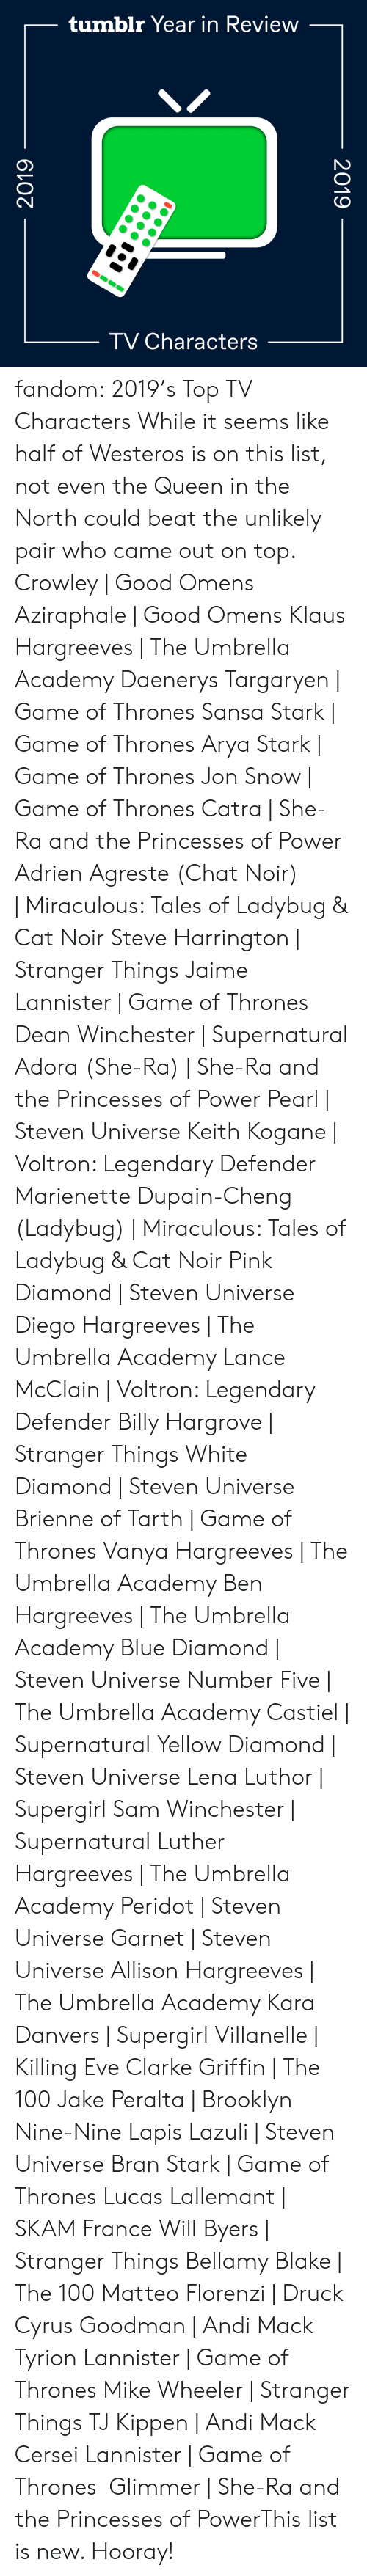 Brooklyn: tumblr Year in Review  TV Characters  2019  2019 fandom:  2019's Top TV Characters  While it seems like half of Westeros is on this list, not even the Queen in the North could beat the unlikely pair who came out on top.  Crowley | Good Omens  Aziraphale | Good Omens  Klaus Hargreeves | The Umbrella Academy  Daenerys Targaryen | Game of Thrones  Sansa Stark | Game of Thrones  Arya Stark | Game of Thrones  Jon Snow | Game of Thrones  Catra | She-Ra and the Princesses of Power  Adrien Agreste (Chat Noir) | Miraculous: Tales of Ladybug & Cat Noir  Steve Harrington | Stranger Things  Jaime Lannister | Game of Thrones  Dean Winchester | Supernatural  Adora (She-Ra) | She-Ra and the Princesses of Power  Pearl | Steven Universe  Keith Kogane | Voltron: Legendary Defender  Marienette Dupain-Cheng (Ladybug) | Miraculous: Tales of Ladybug & Cat Noir  Pink Diamond | Steven Universe  Diego Hargreeves | The Umbrella Academy  Lance McClain | Voltron: Legendary Defender  Billy Hargrove | Stranger Things  White Diamond | Steven Universe  Brienne of Tarth | Game of Thrones  Vanya Hargreeves | The Umbrella Academy  Ben Hargreeves | The Umbrella Academy  Blue Diamond | Steven Universe  Number Five | The Umbrella Academy  Castiel | Supernatural  Yellow Diamond | Steven Universe  Lena Luthor | Supergirl  Sam Winchester | Supernatural  Luther Hargreeves | The Umbrella Academy  Peridot | Steven Universe  Garnet | Steven Universe  Allison Hargreeves | The Umbrella Academy  Kara Danvers | Supergirl  Villanelle | Killing Eve  Clarke Griffin | The 100  Jake Peralta | Brooklyn Nine-Nine  Lapis Lazuli | Steven Universe  Bran Stark | Game of Thrones  Lucas Lallemant | SKAM France  Will Byers | Stranger Things  Bellamy Blake | The 100  Matteo Florenzi | Druck  Cyrus Goodman | Andi Mack  Tyrion Lannister | Game of Thrones  Mike Wheeler | Stranger Things  TJ Kippen | Andi Mack  Cersei Lannister | Game of Thrones  Glimmer | She-Ra and the Princesses of PowerThis list is new. Hooray!